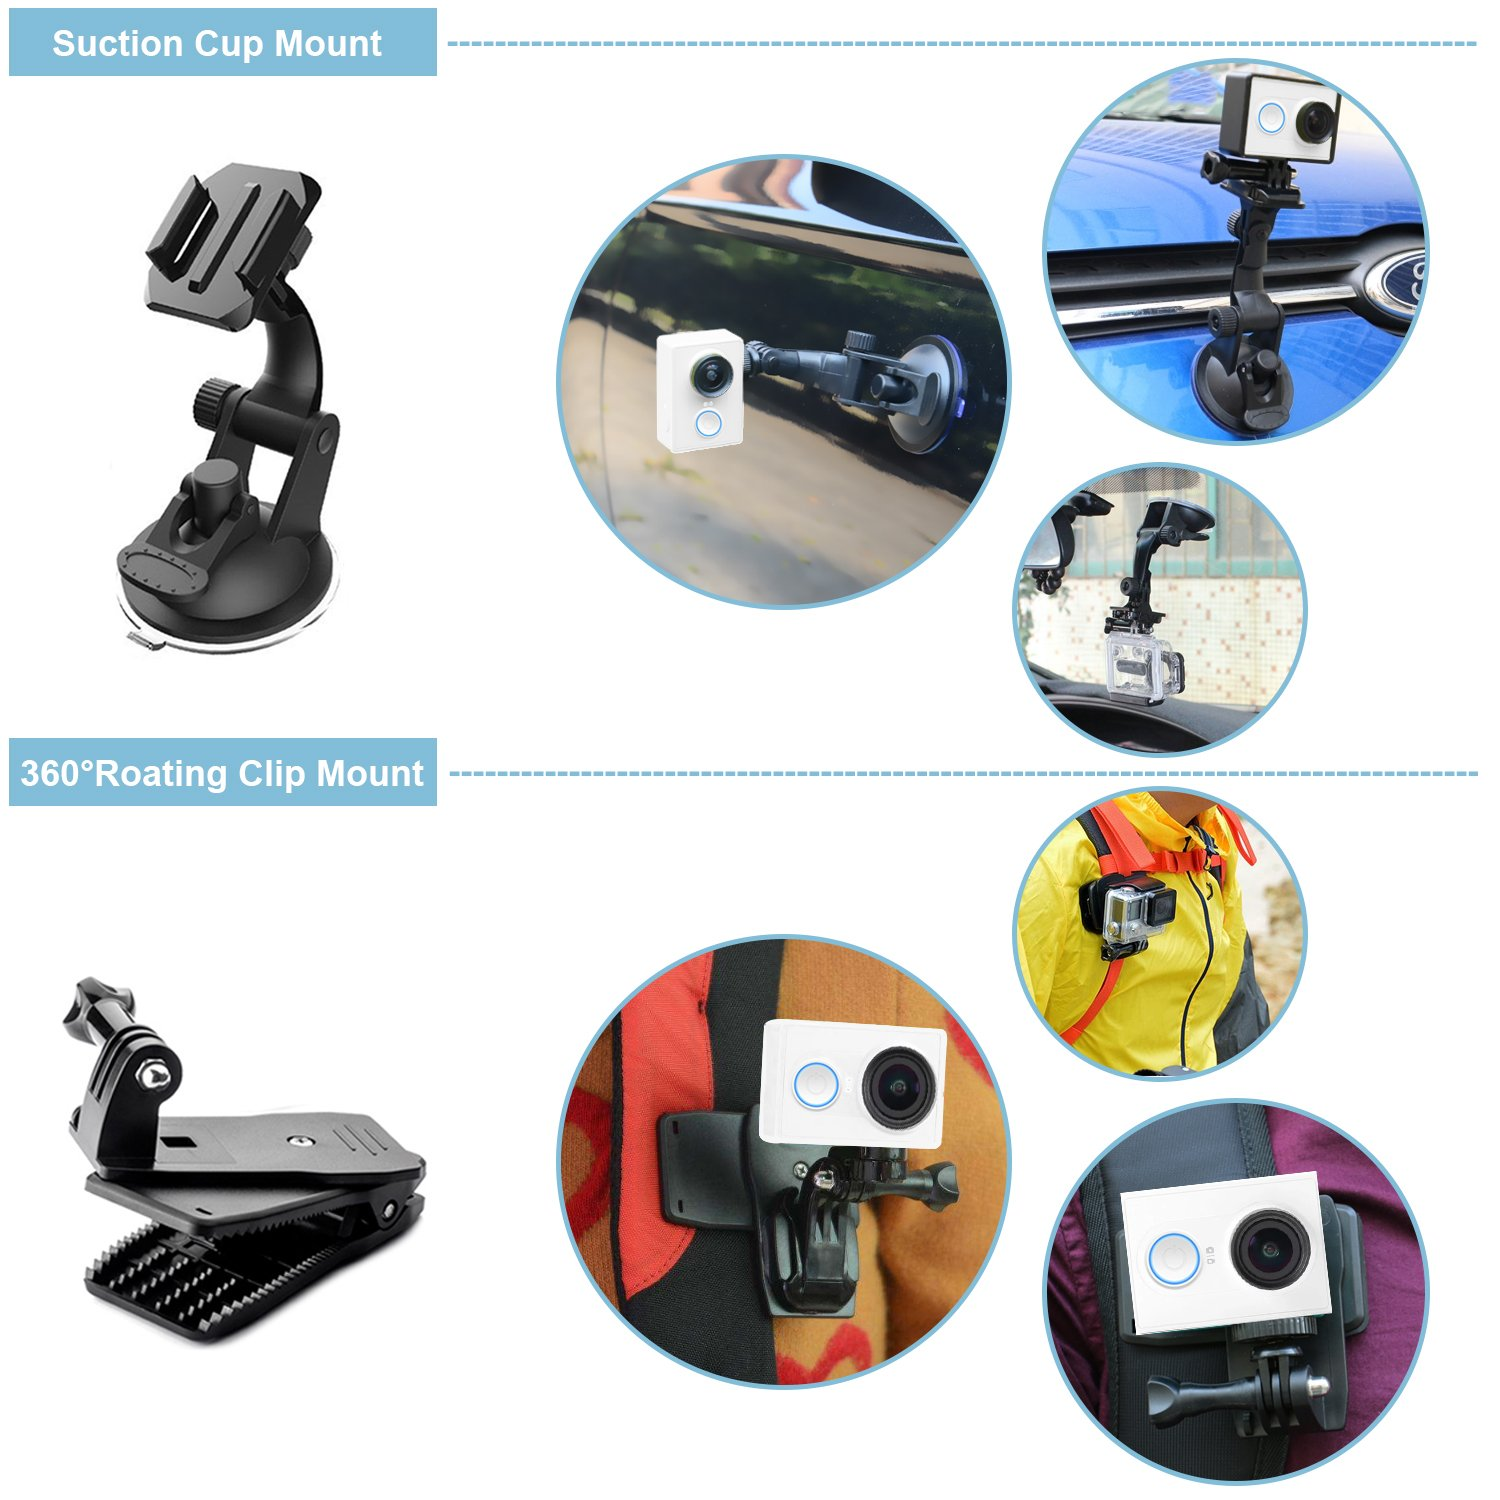 Accessories for GoPro Hero 7 6 5 Action Camera Accessories Kits for Go Pro Hero 2018 Hero Session 5 4 3 2 1 AKASO EK7000 Apeman and Most of Sports Camera by LUSCREAL.